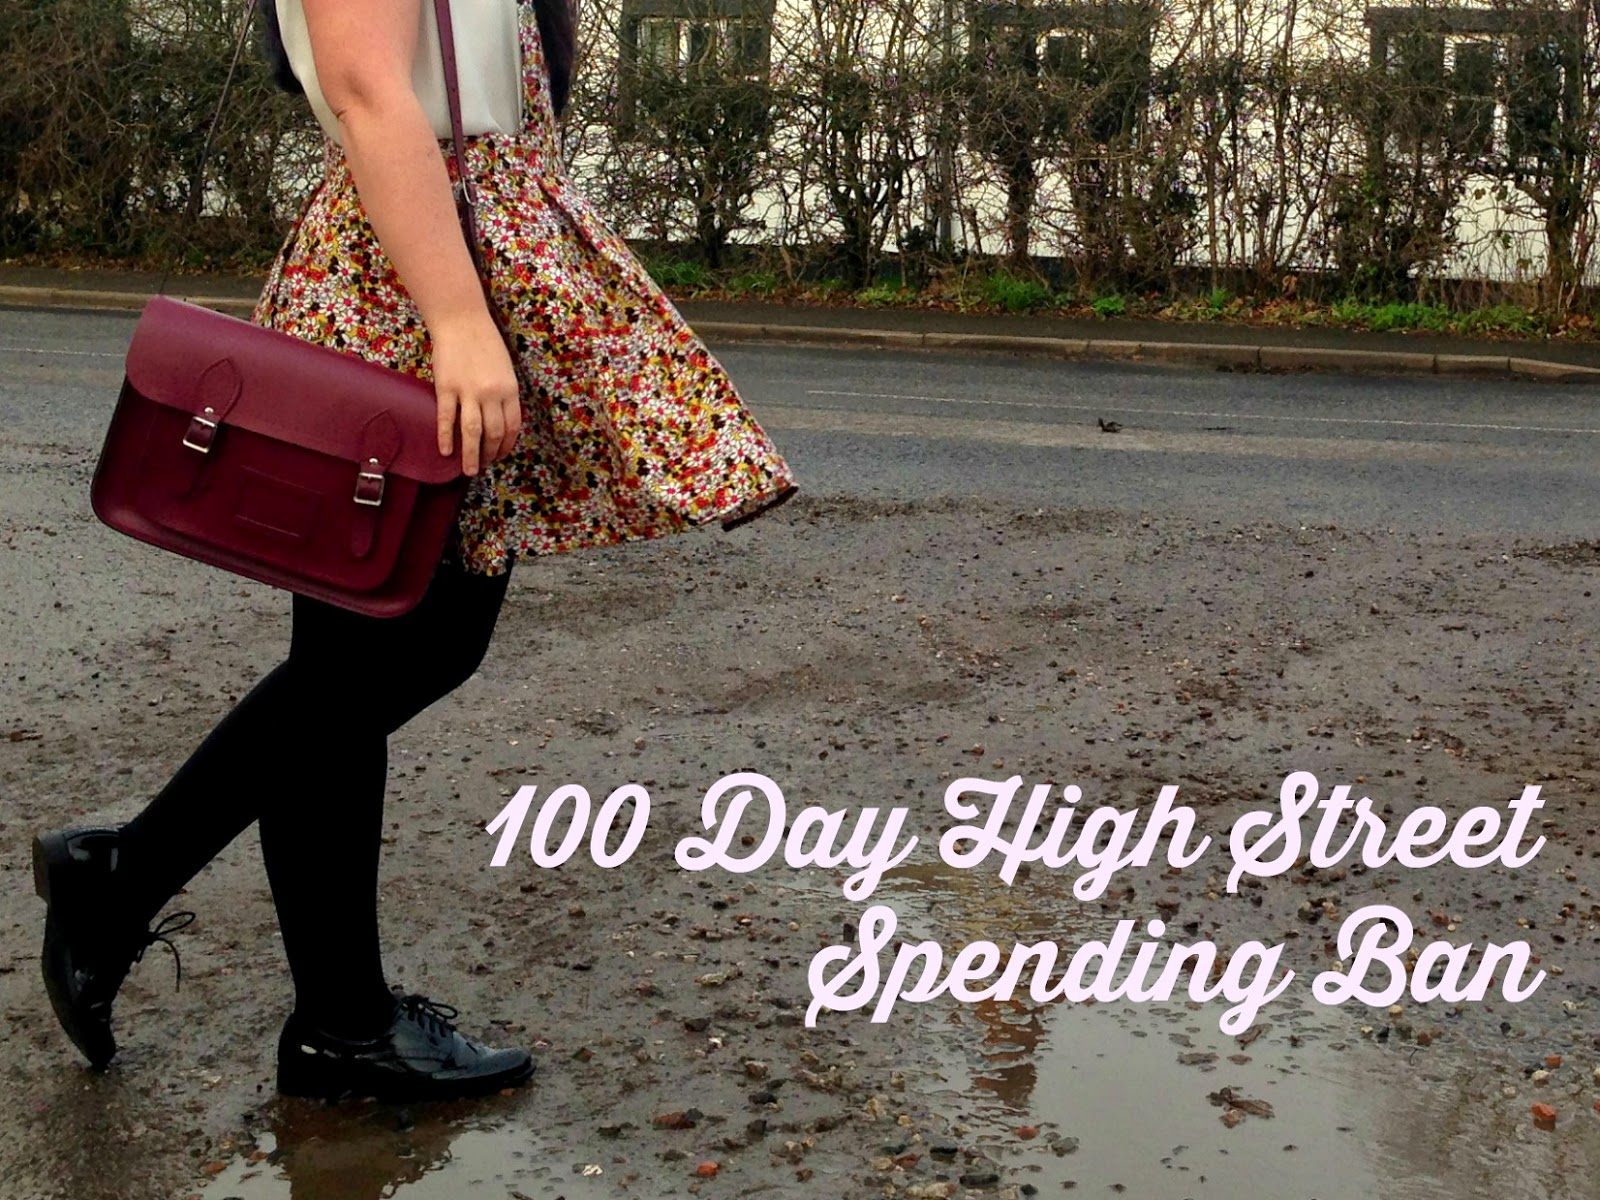 100 DAY HIGH STREET BAN :: REDUCE, REUSE, RECYCLE